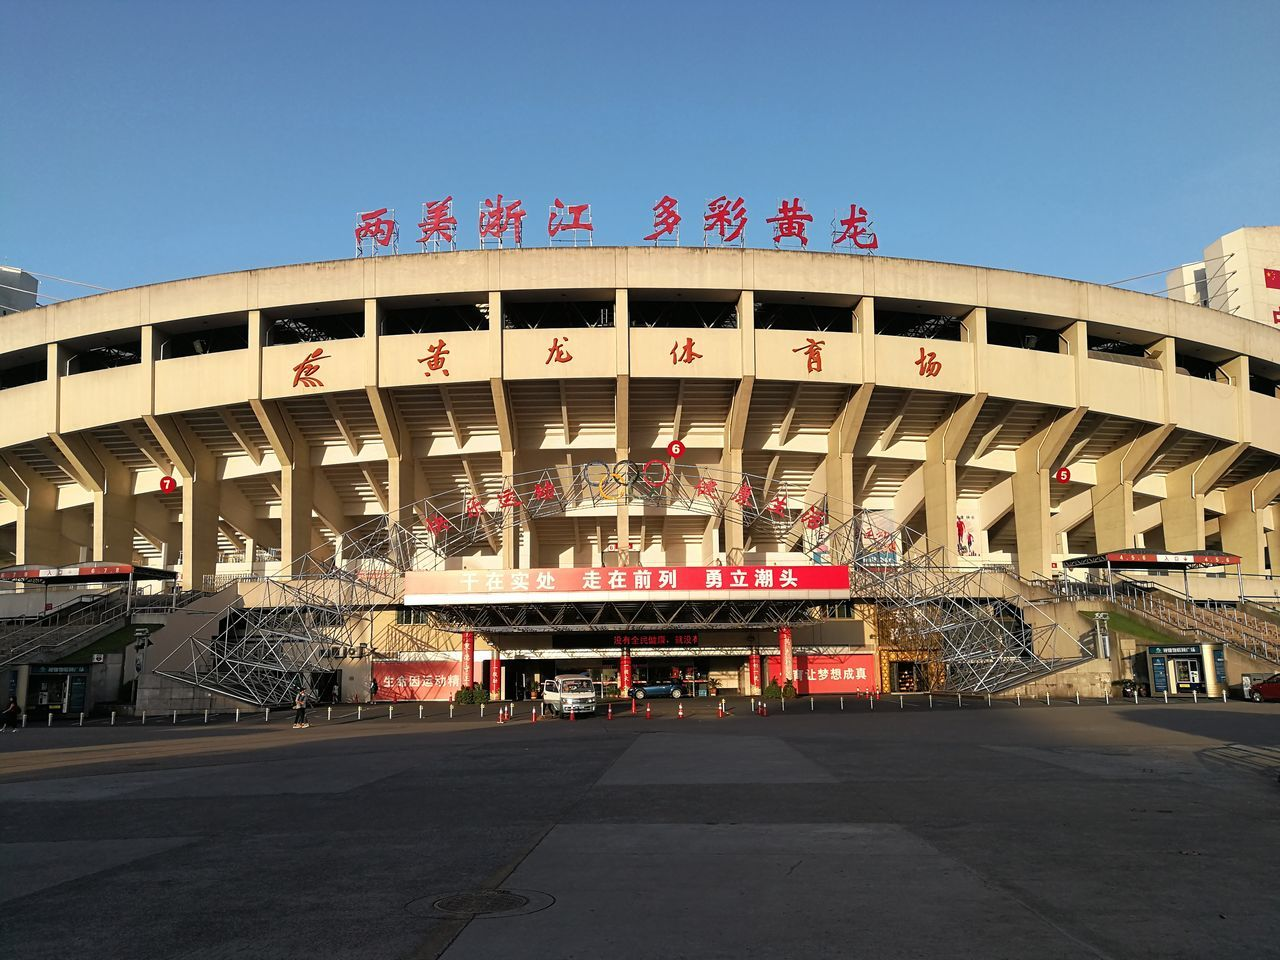 Hangzhou stadium in Gongshu district, a typical multi layered stadium made of concrete contrasting with modern styles Architecture Building Exterior Built Structure Clear Sky Day No People Outdoors Sky